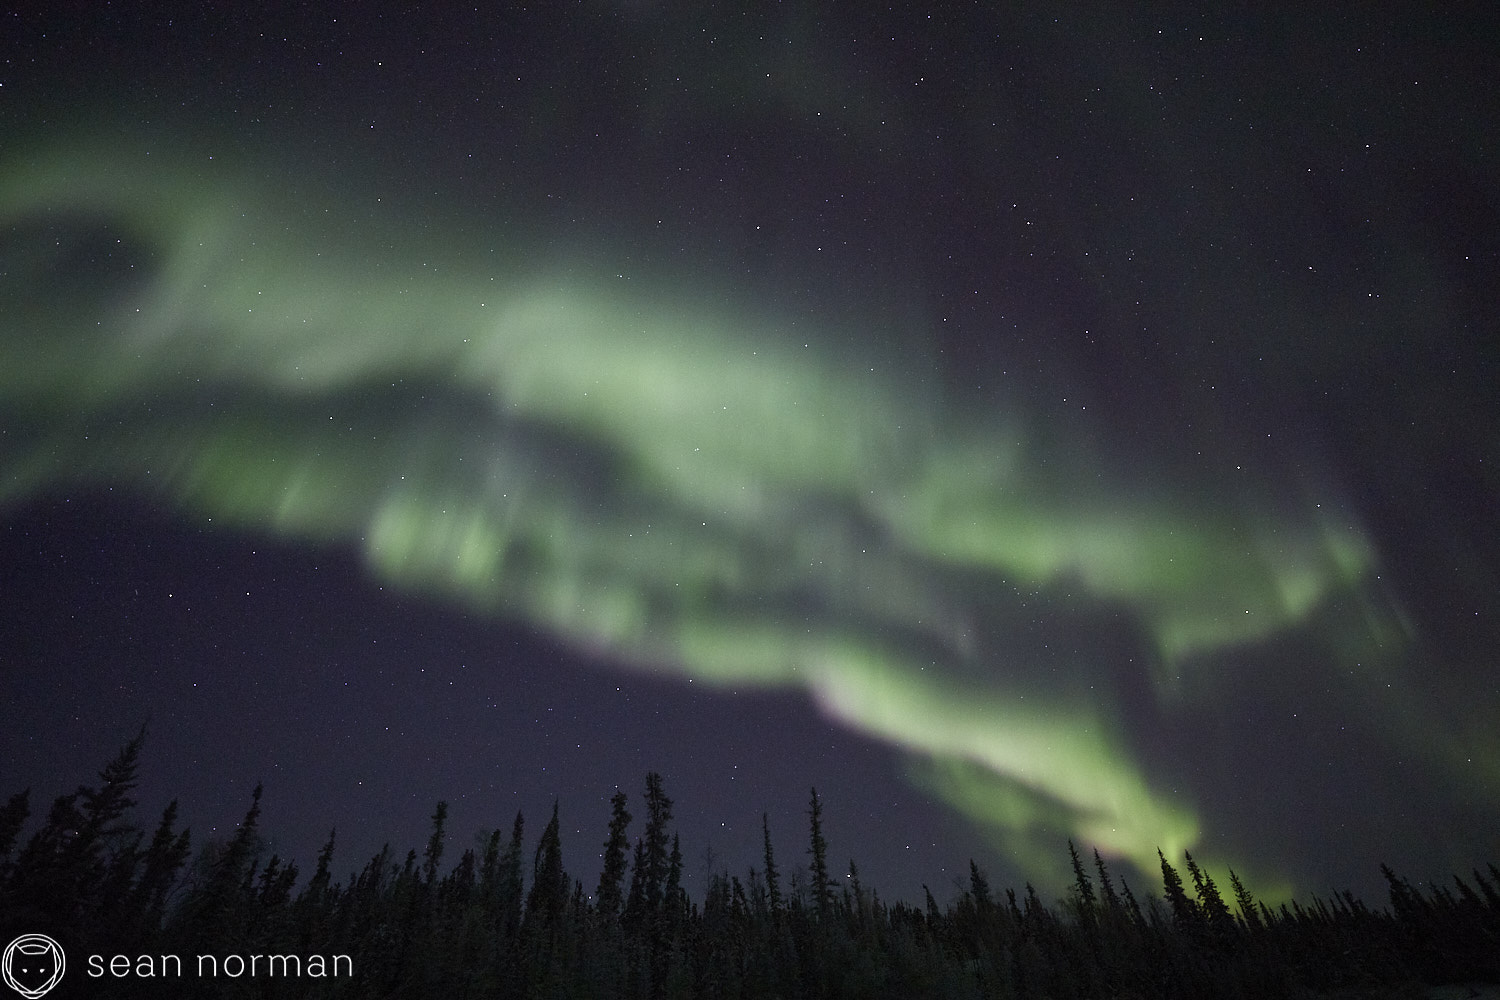 Sean Norman - Yellowknife Aurora Hunting Tour - Northern Lights Tour Guide - 6.jpg